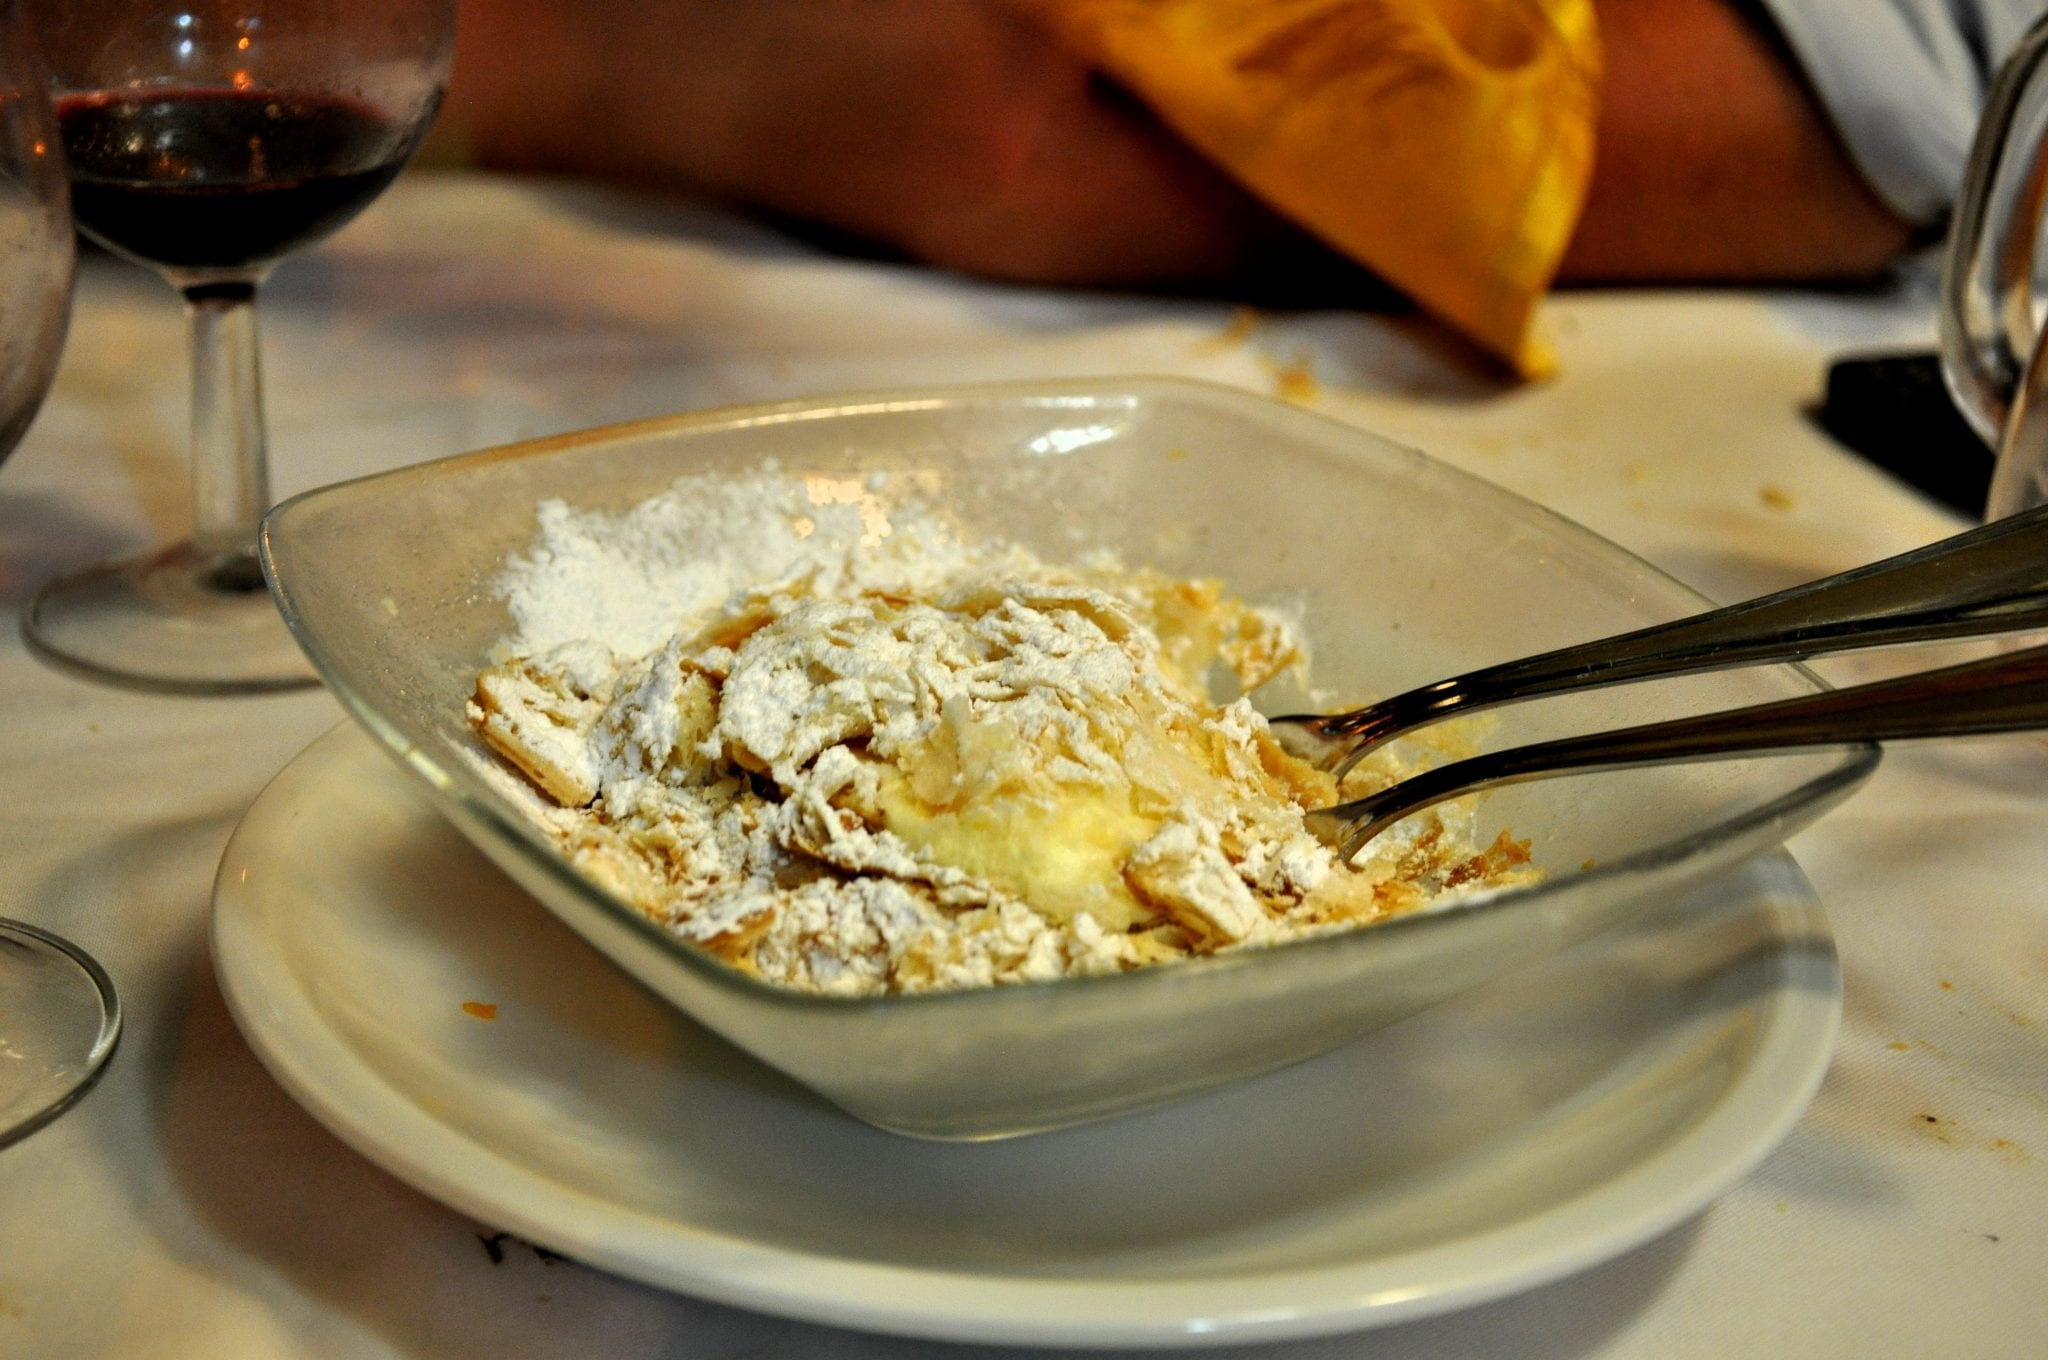 Most main Italian dishes don't have cream, but sweets often do!